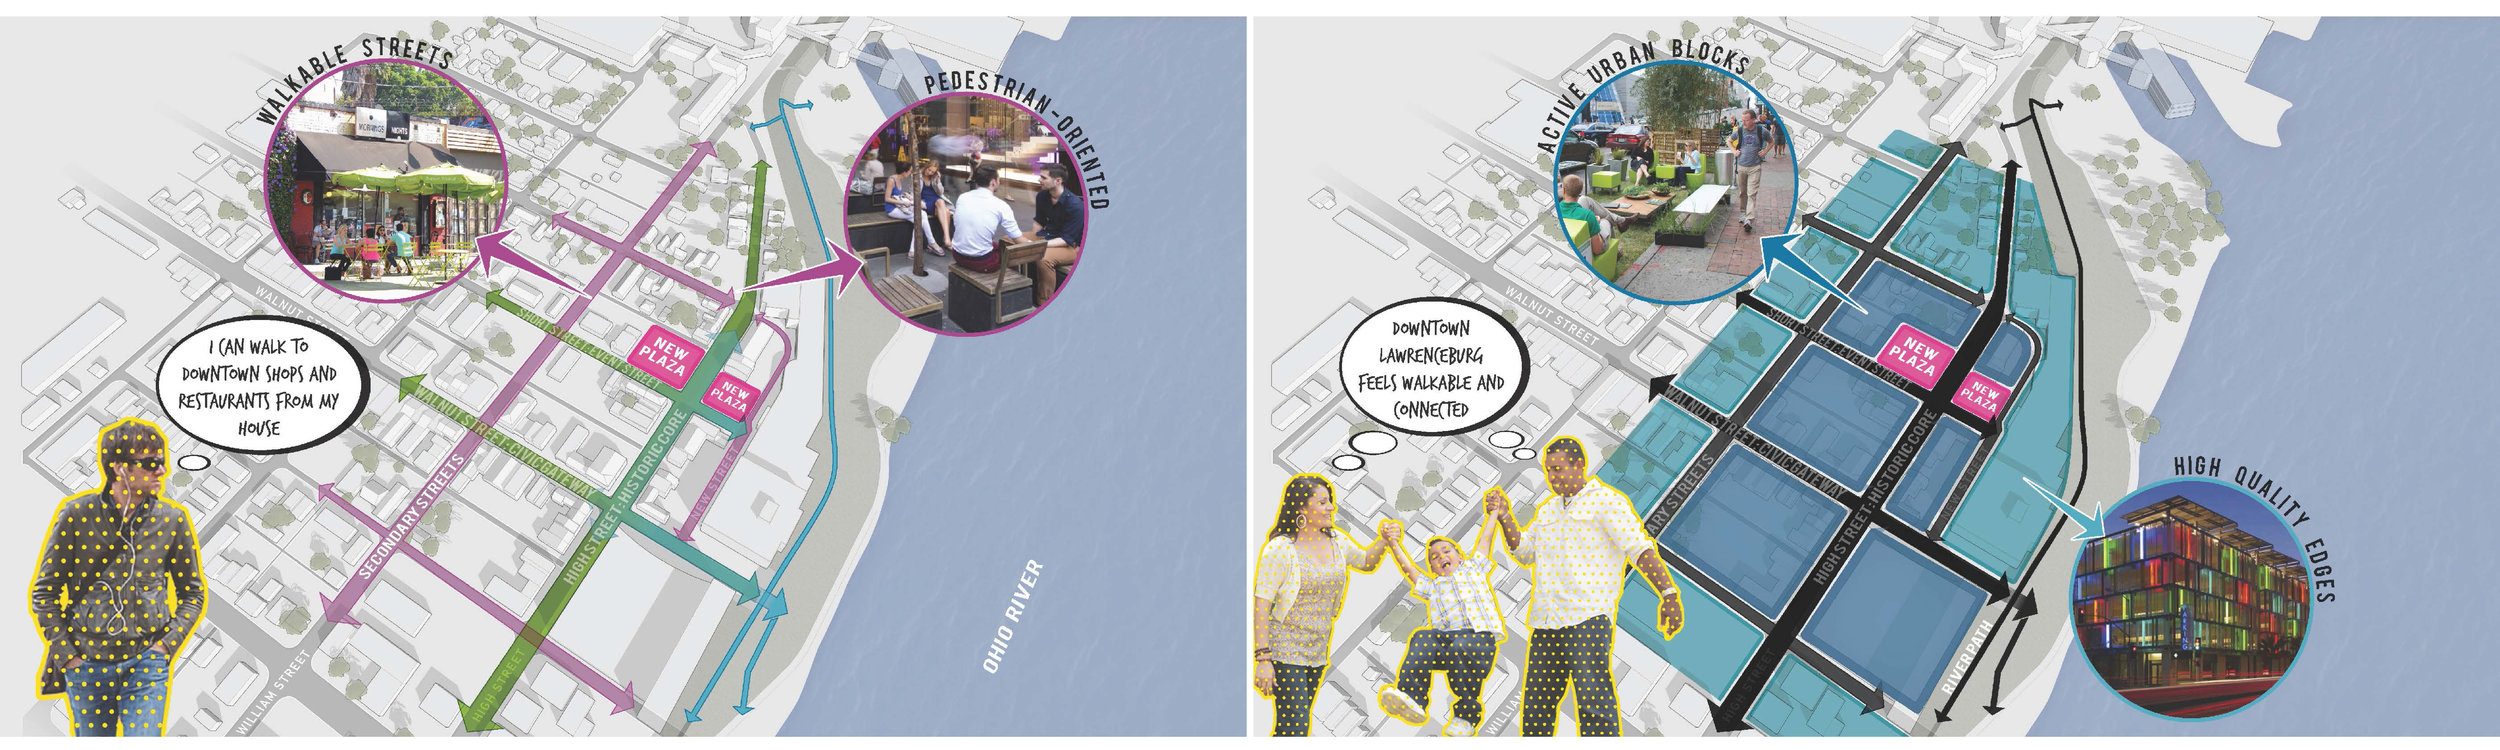 Planning Diagrams developed during initial understanding of the Entertainment District